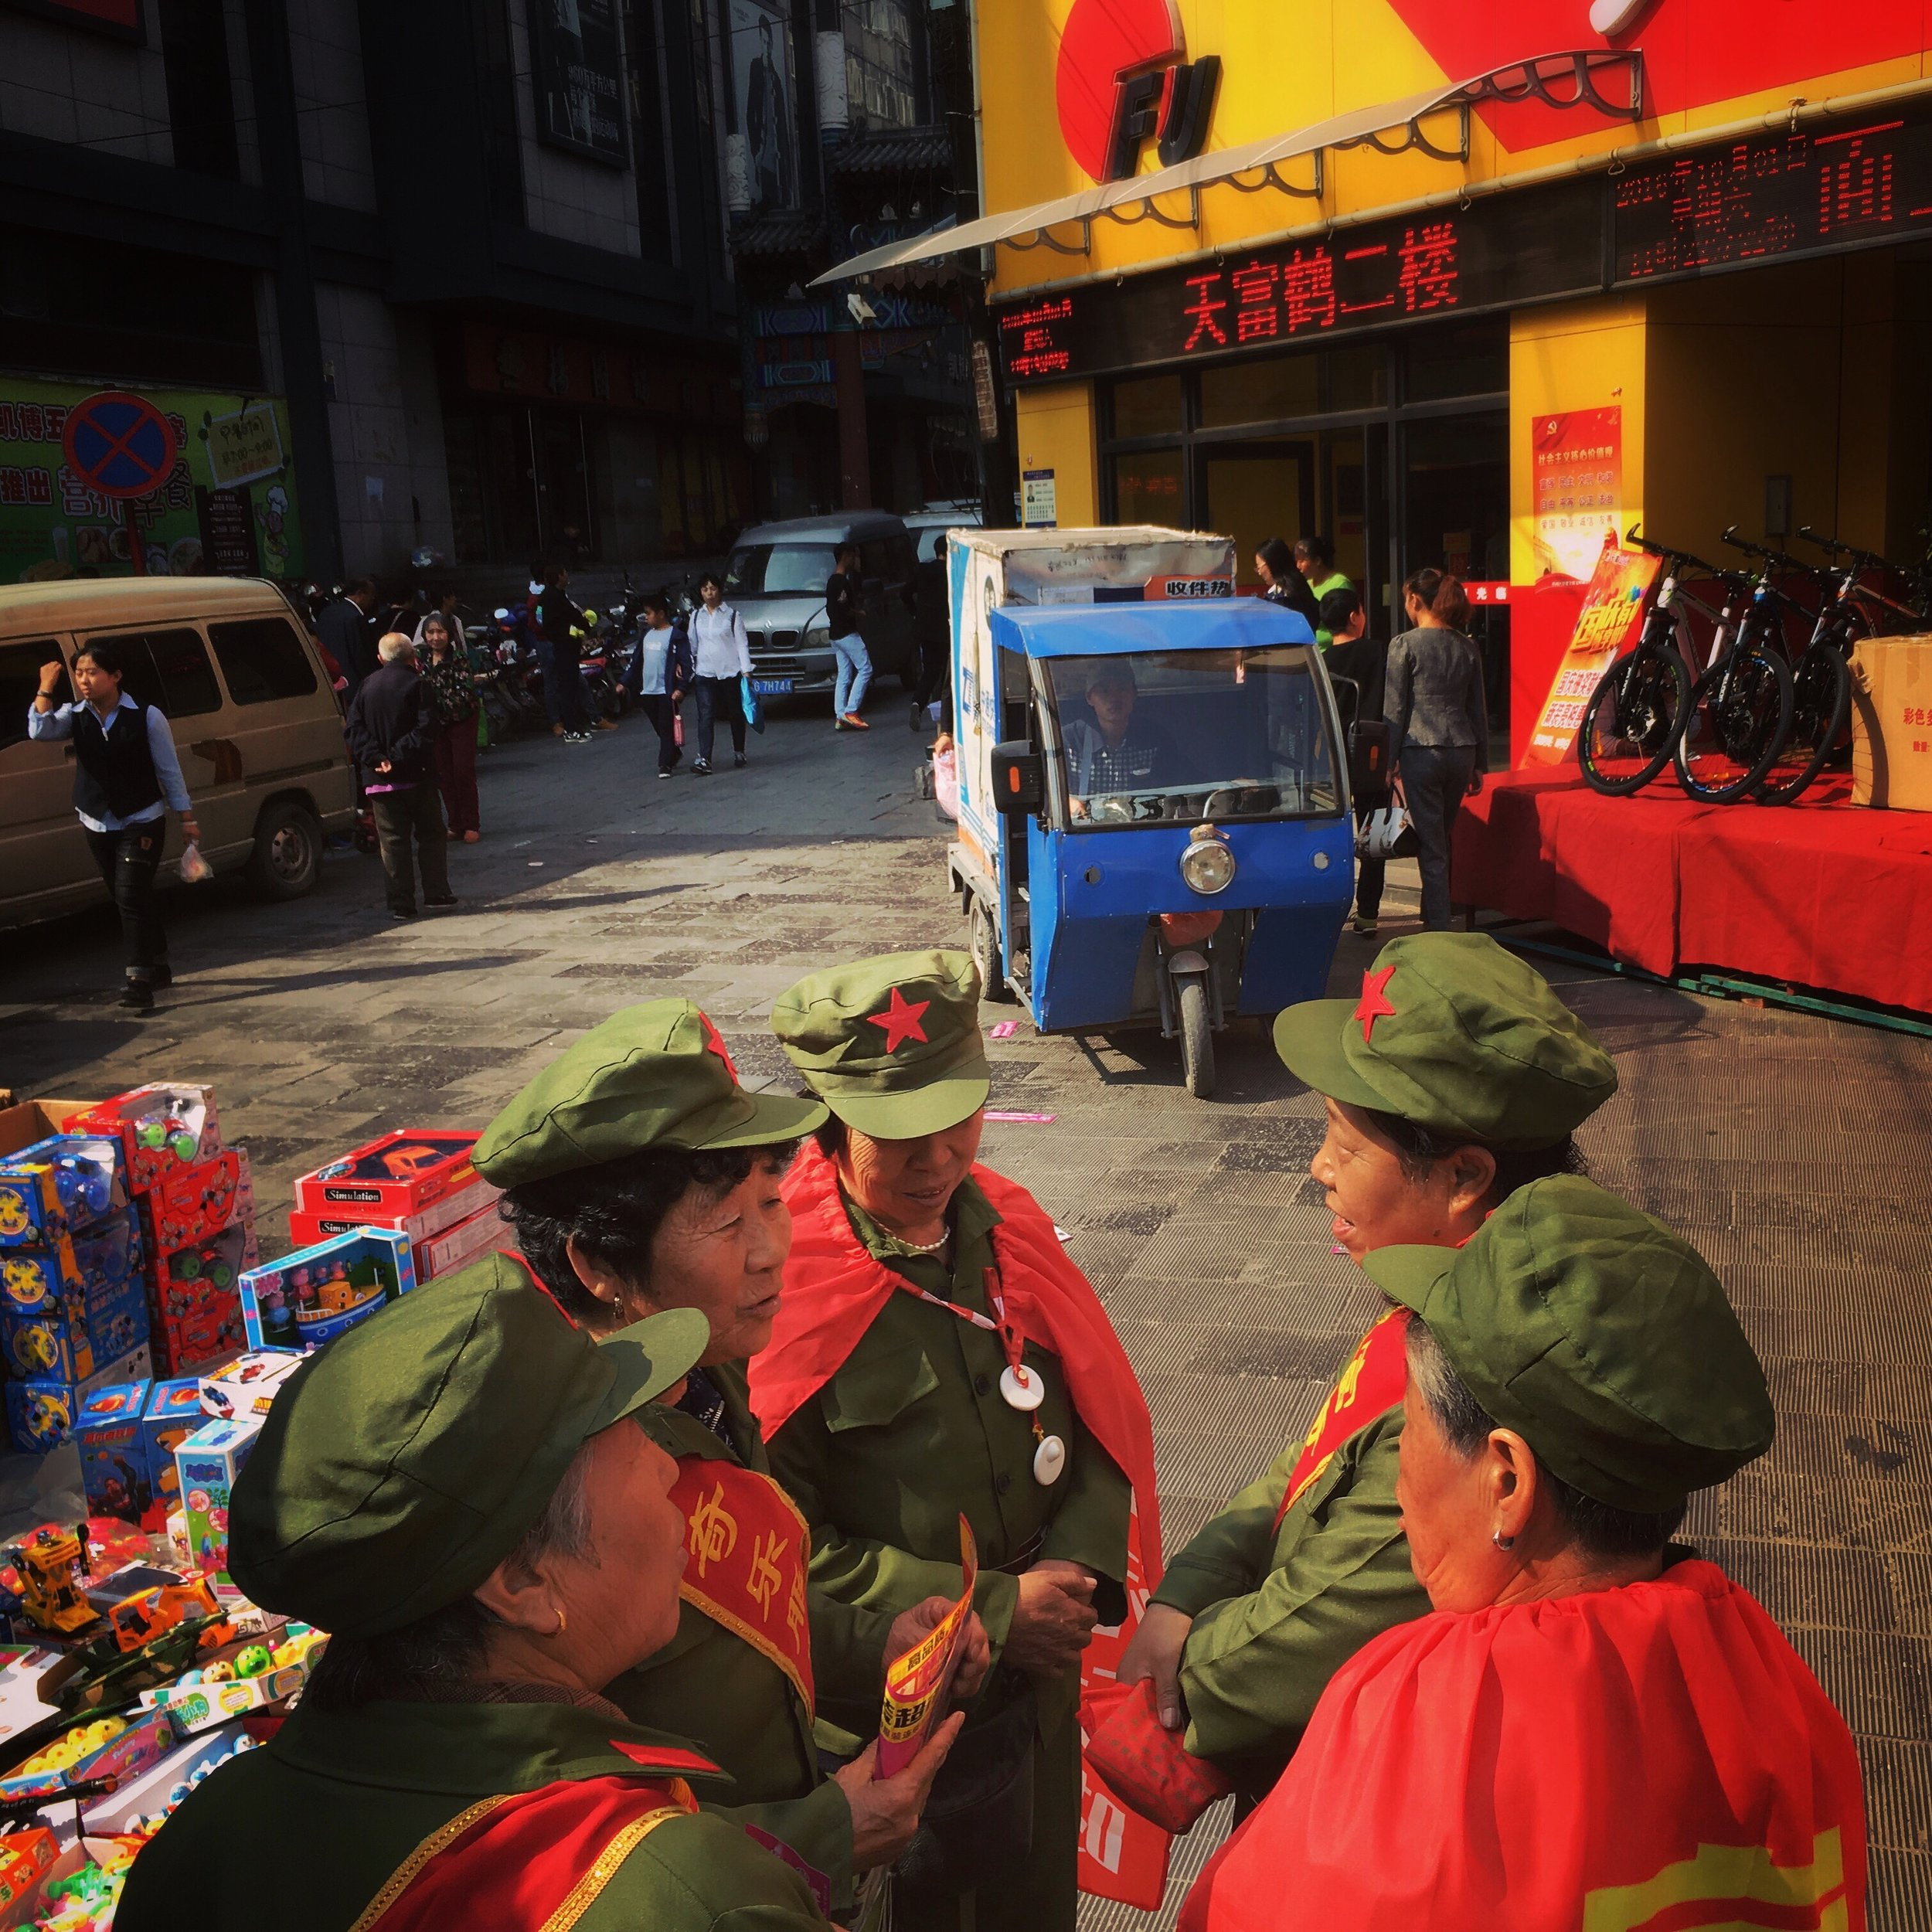 Old ladies dressed as Red Guards strategise before handing out promotional flyers for a supermarket. Zhangjiakou.